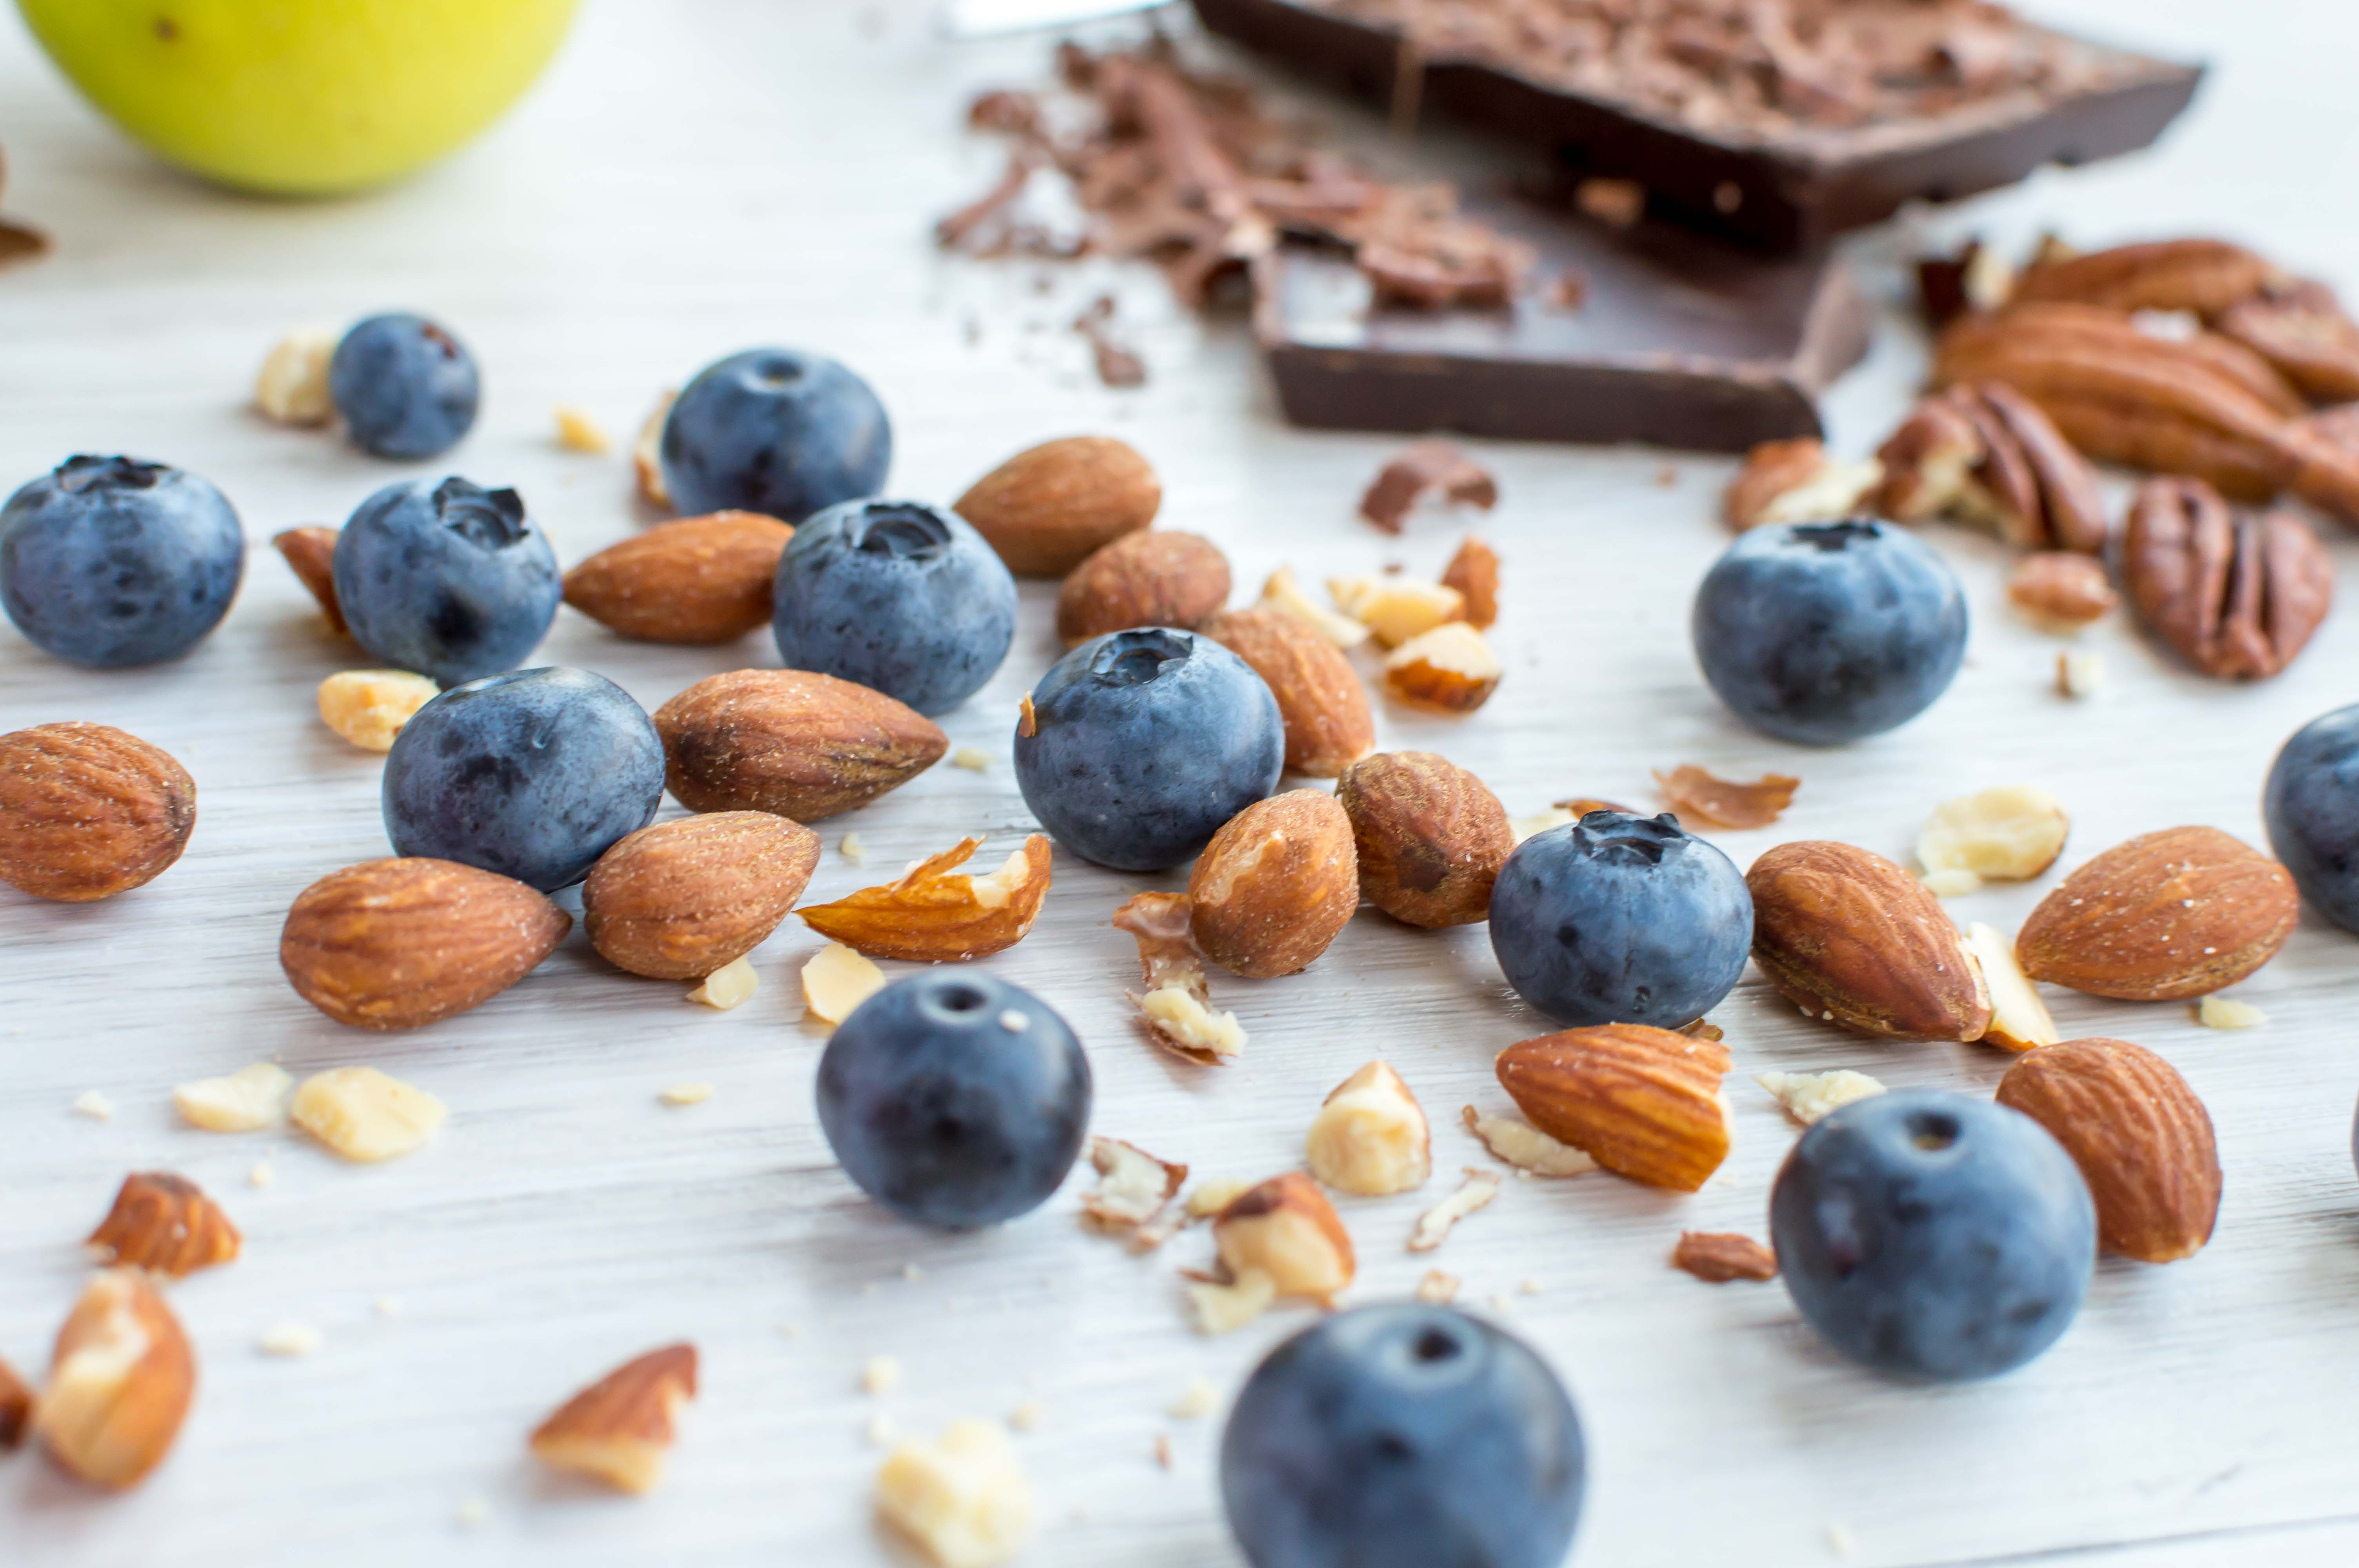 Blueberries & Almonds